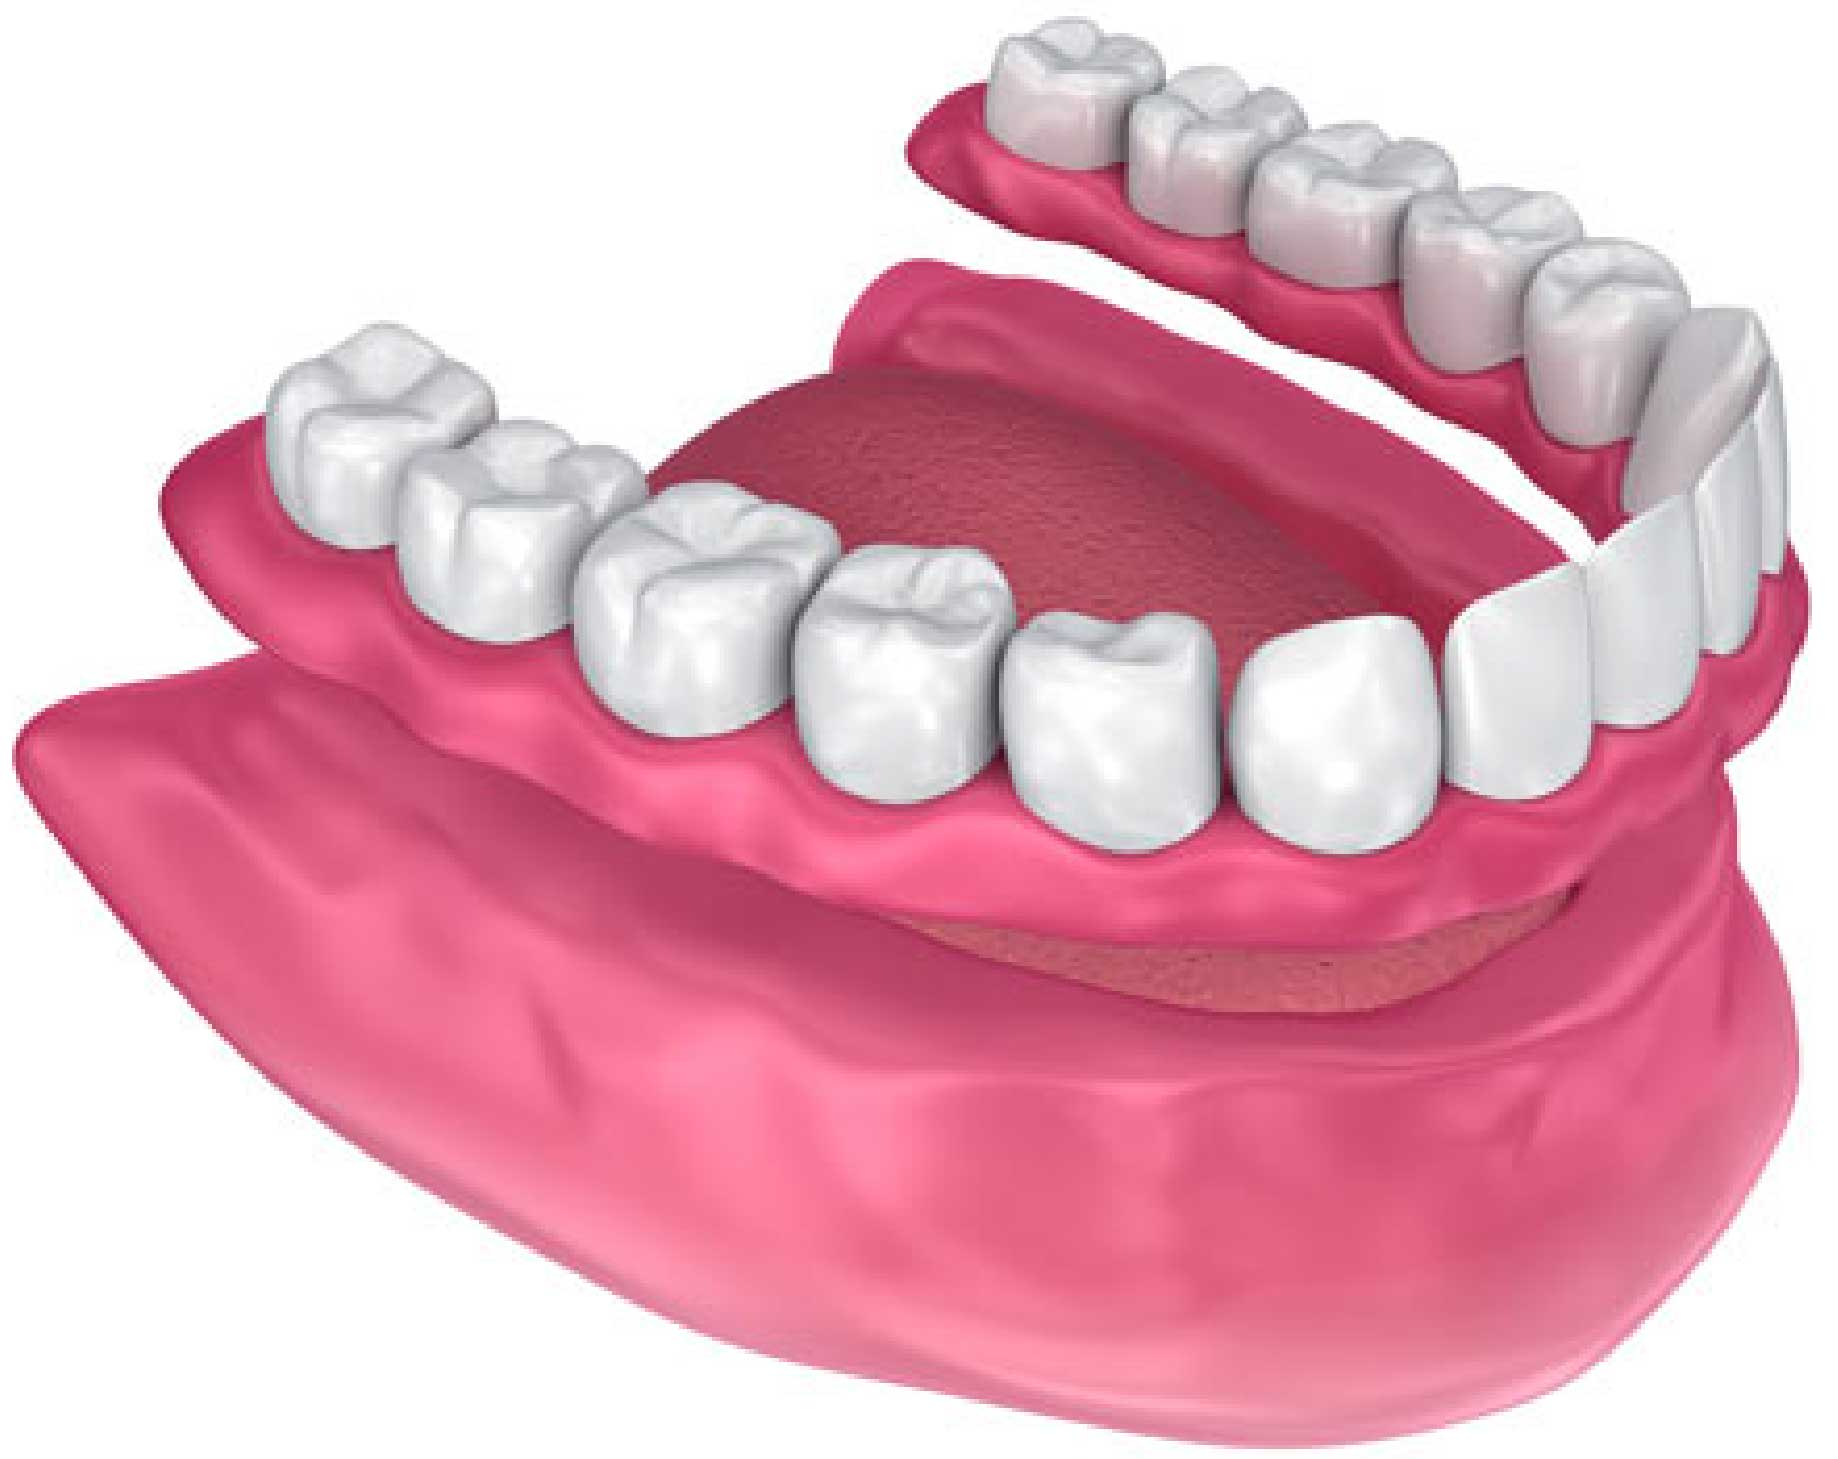 Model of Complete Denture